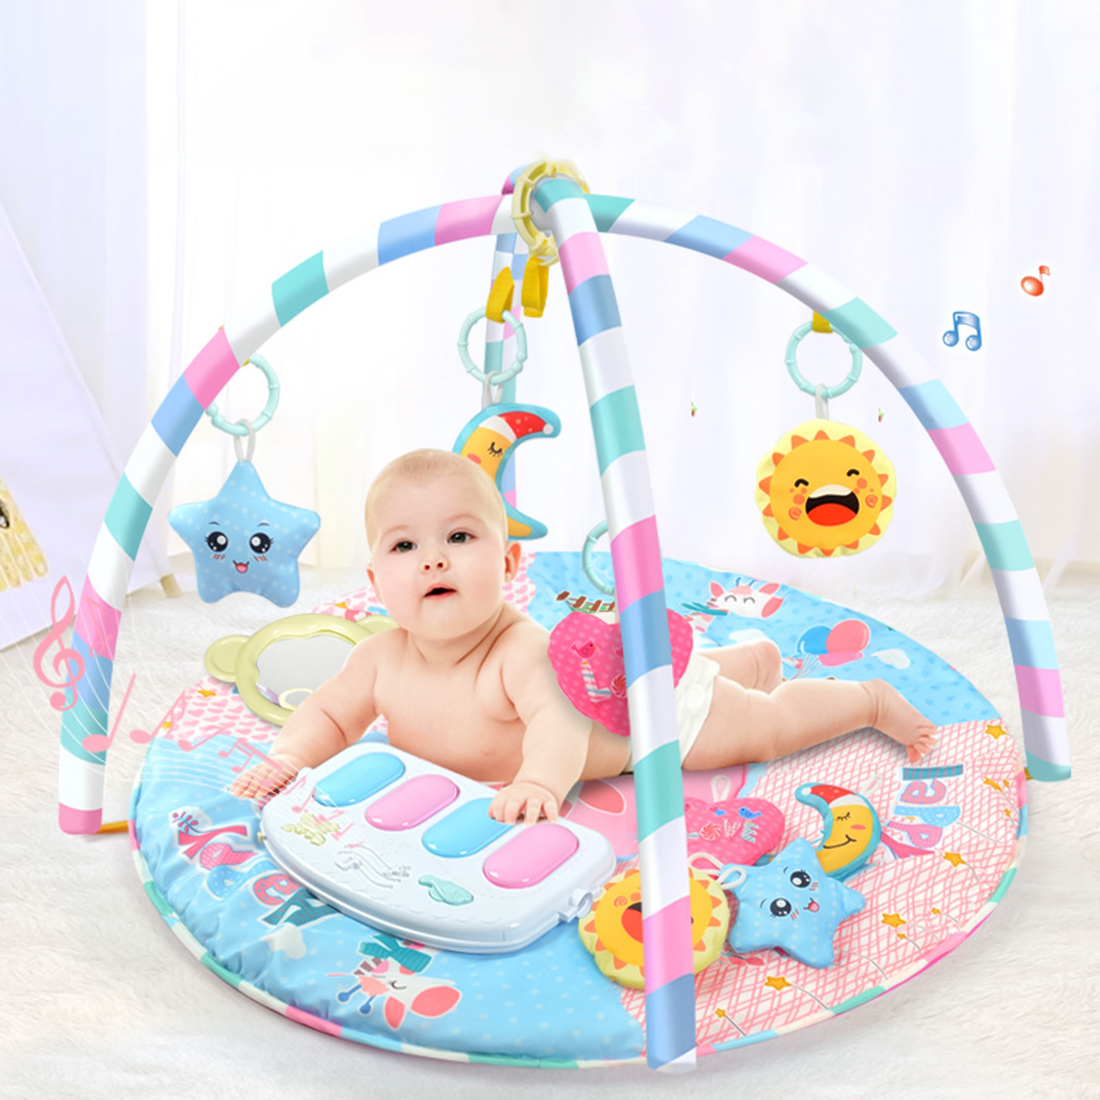 NFSTRIKE baby play mats for kids Activity Fitness Rug Musical Piano Game Toy with Light for Baby Toys Educational Developmental baby kids toy musical piano activity cube play center with lights mulitfunctions